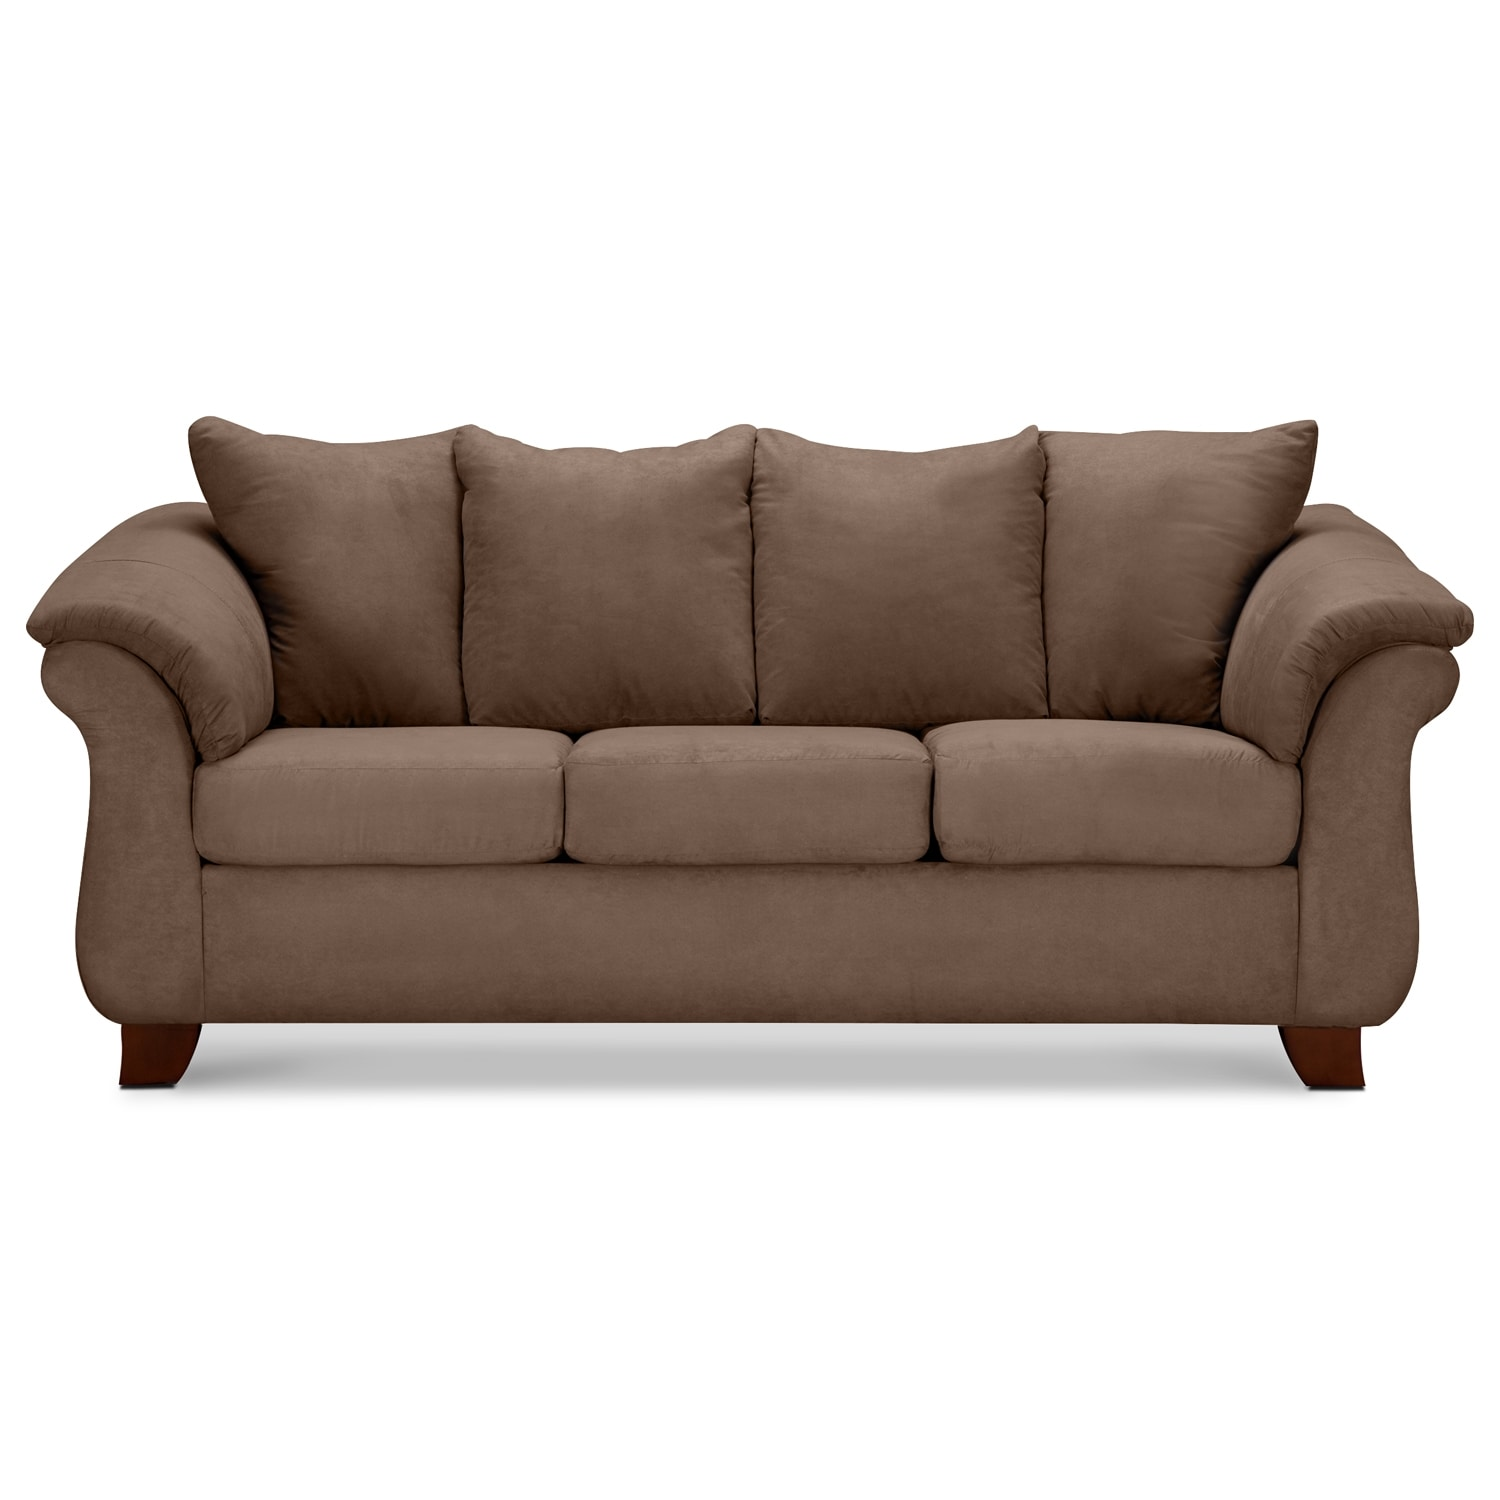 Adrian taupe sofa value city furniture Living room loveseats